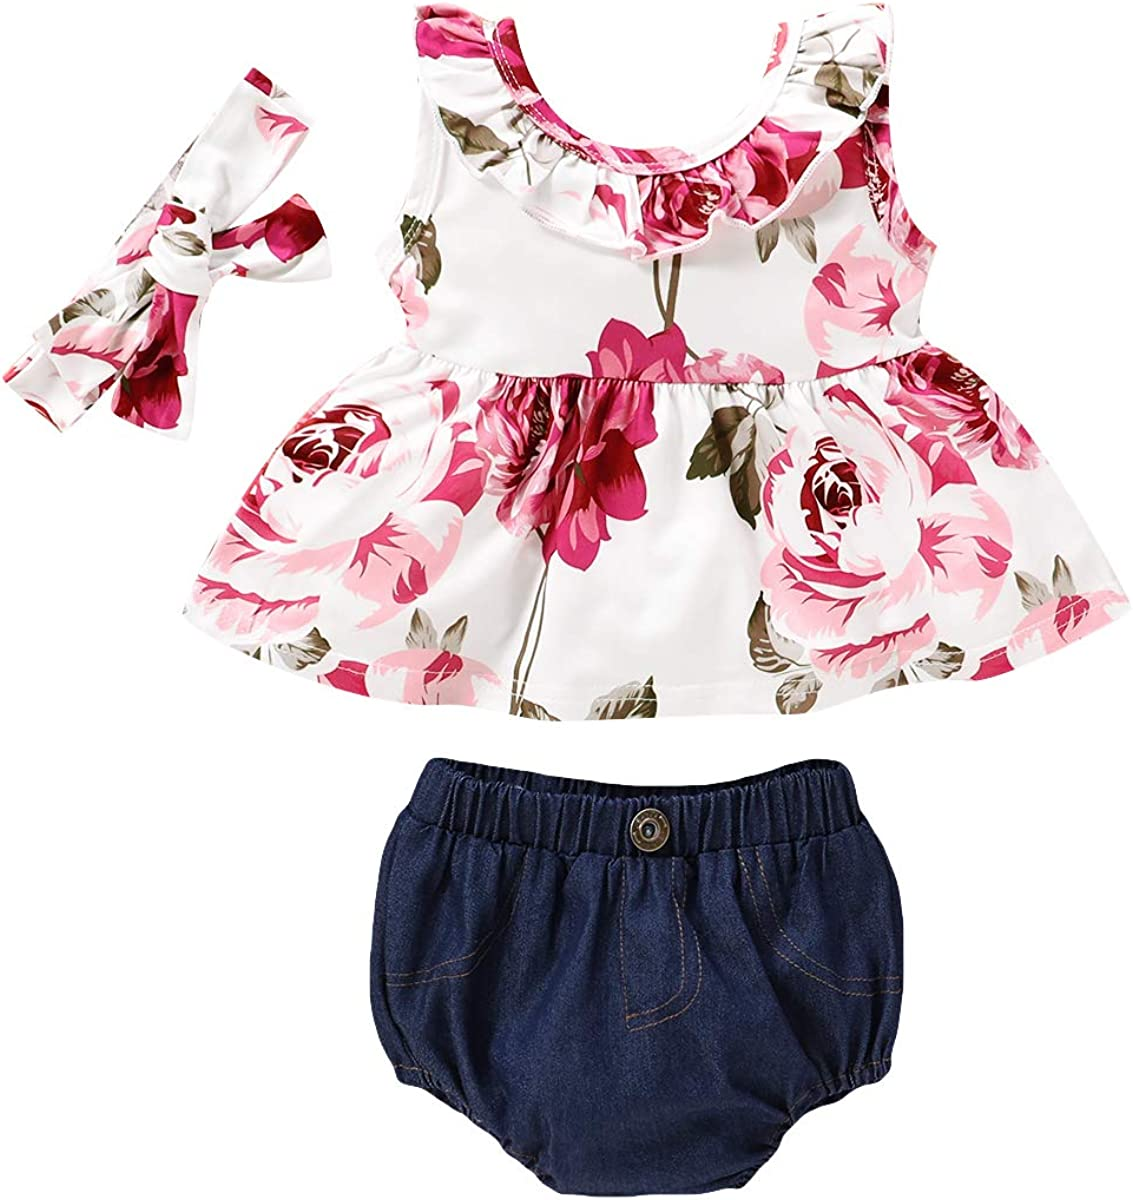 Baby Girls Floral Outfits Backless Tank Tops+Shorts Bloomer Clothing Set